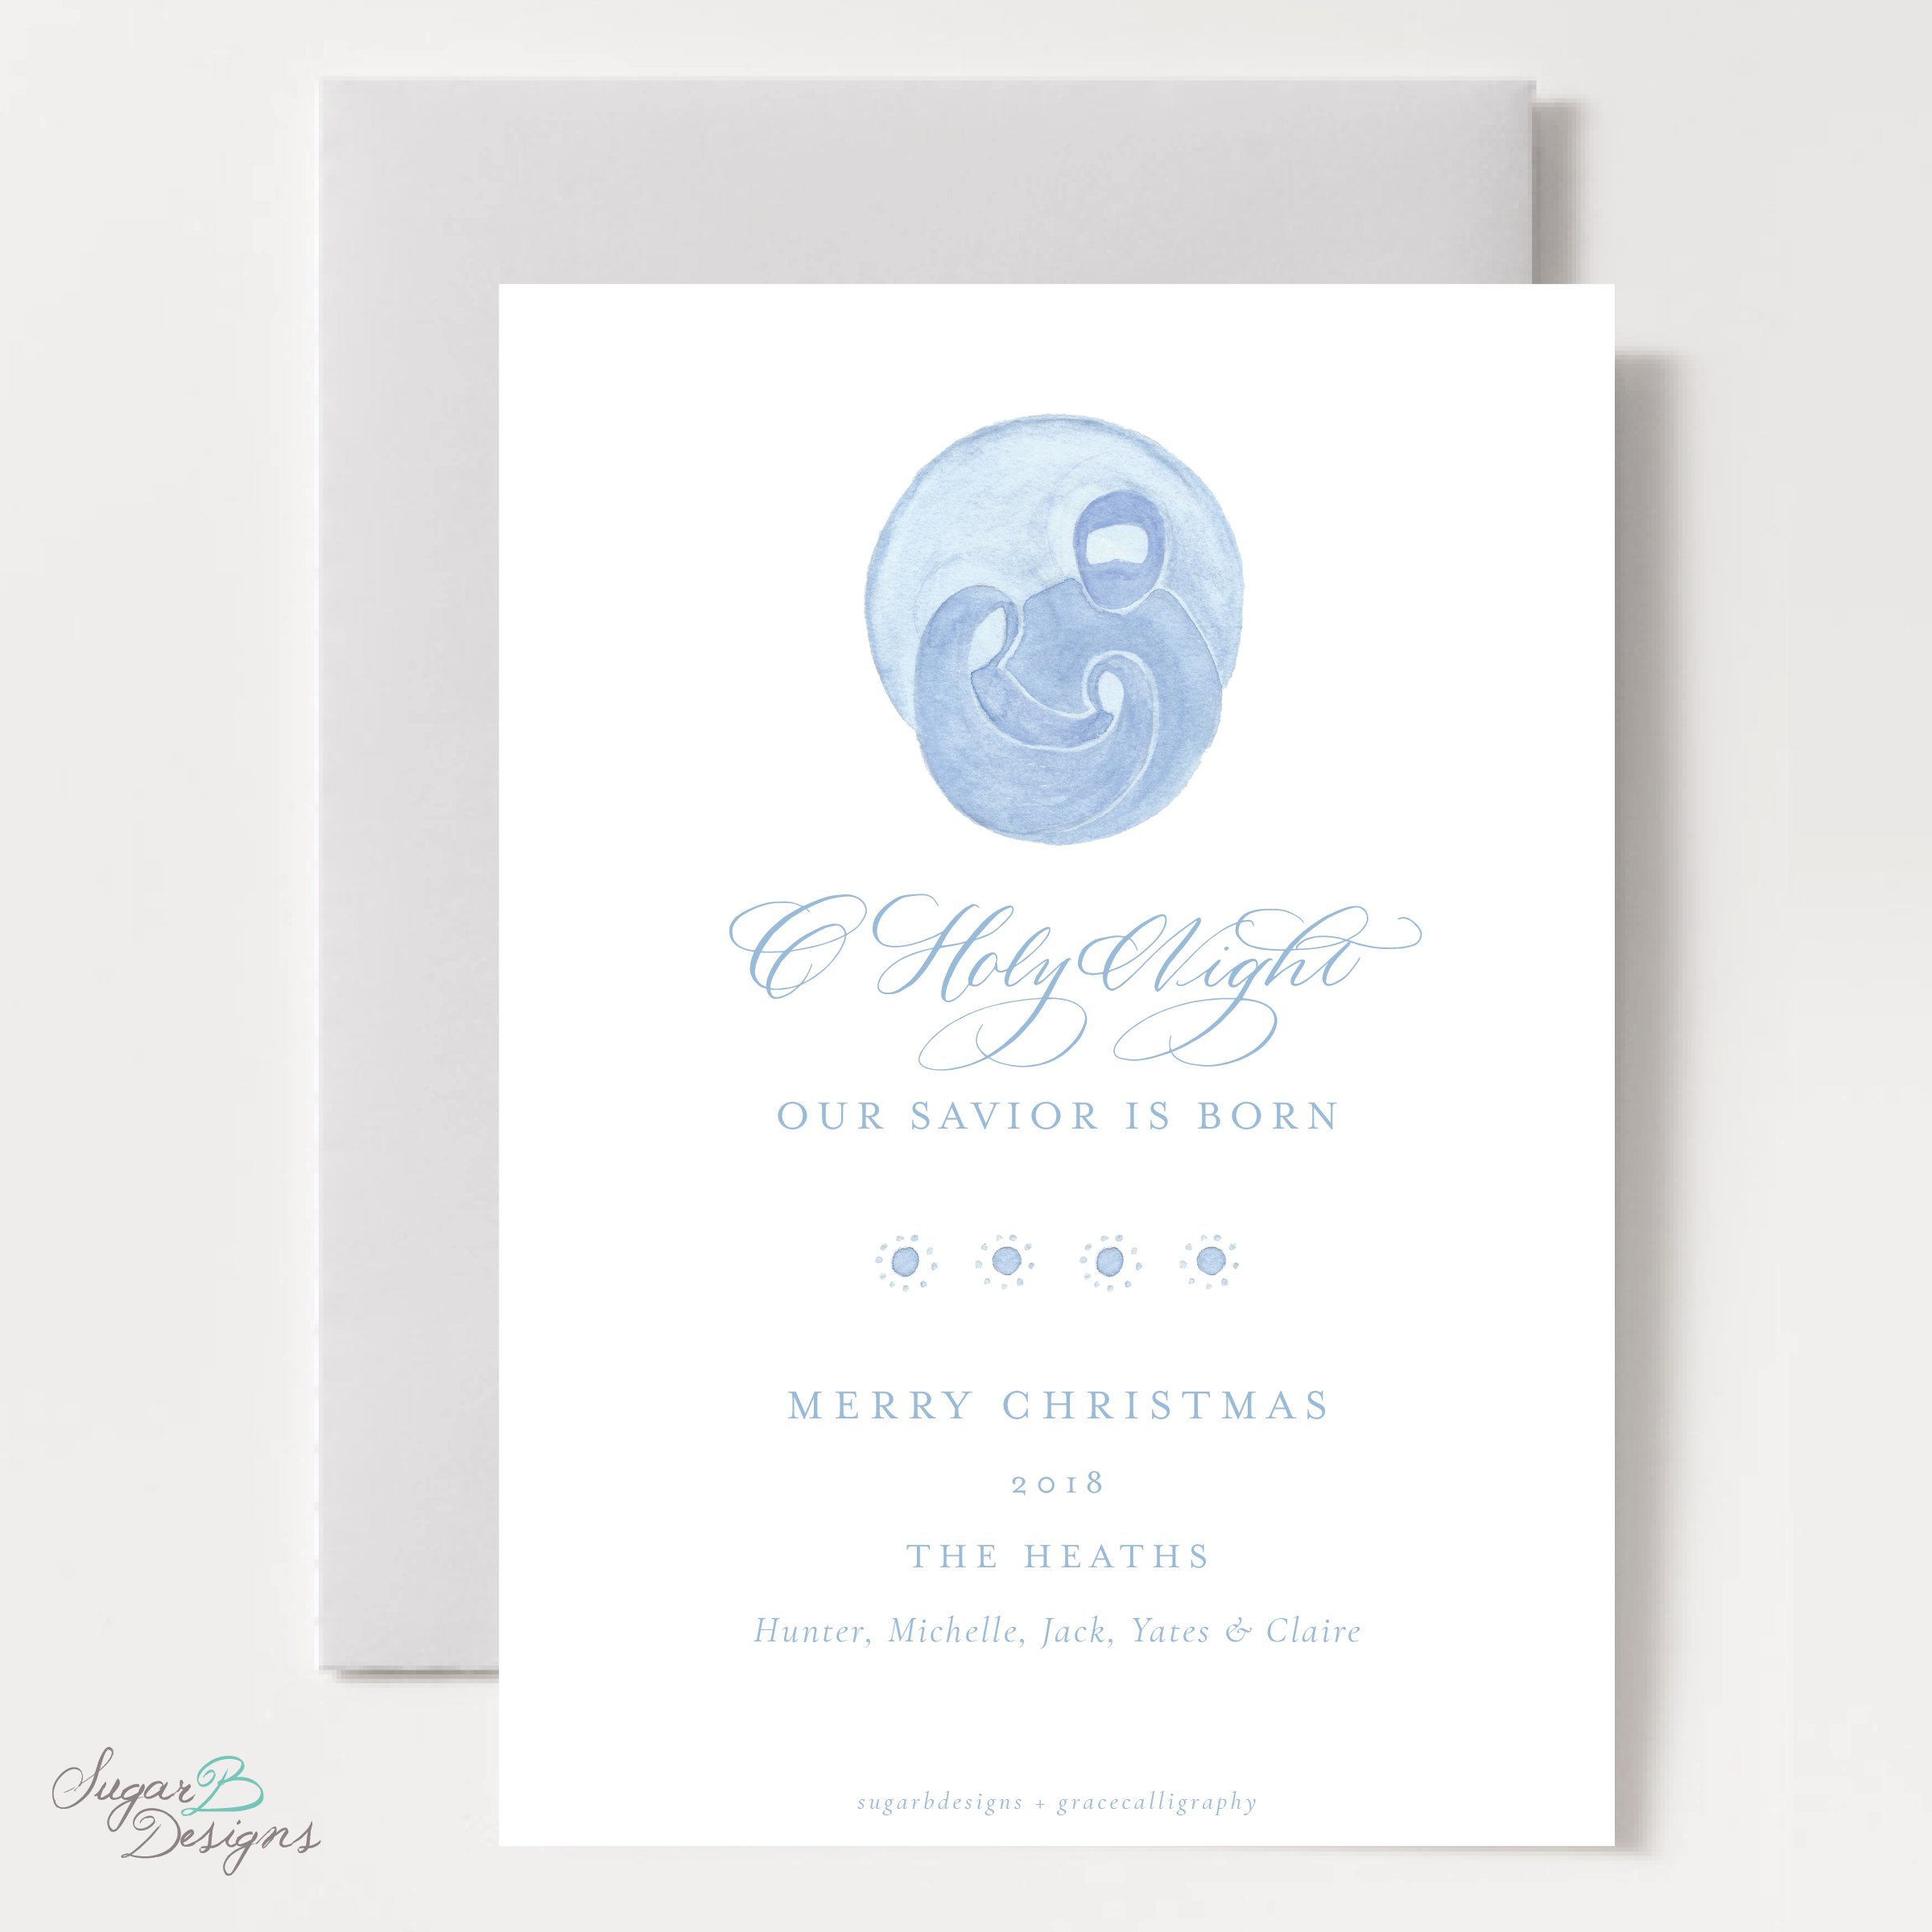 The Newborn King Christmas Card back by Sugar B Designs.png